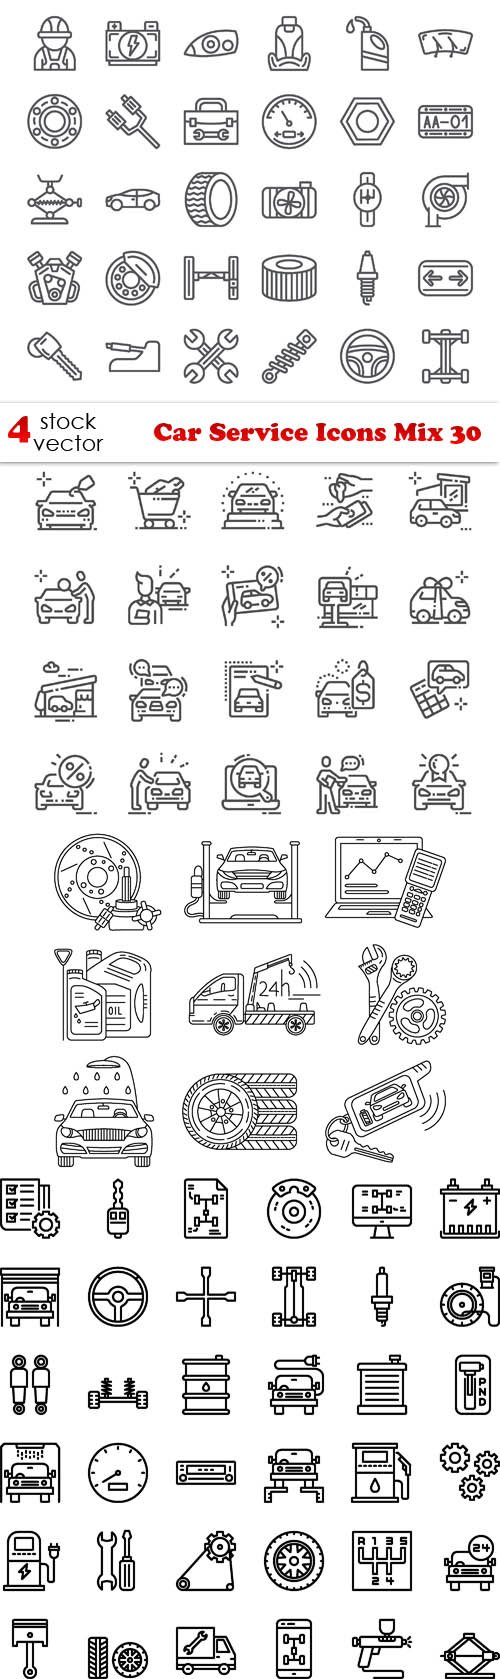 Vectors - Car Service Icons Mix 30